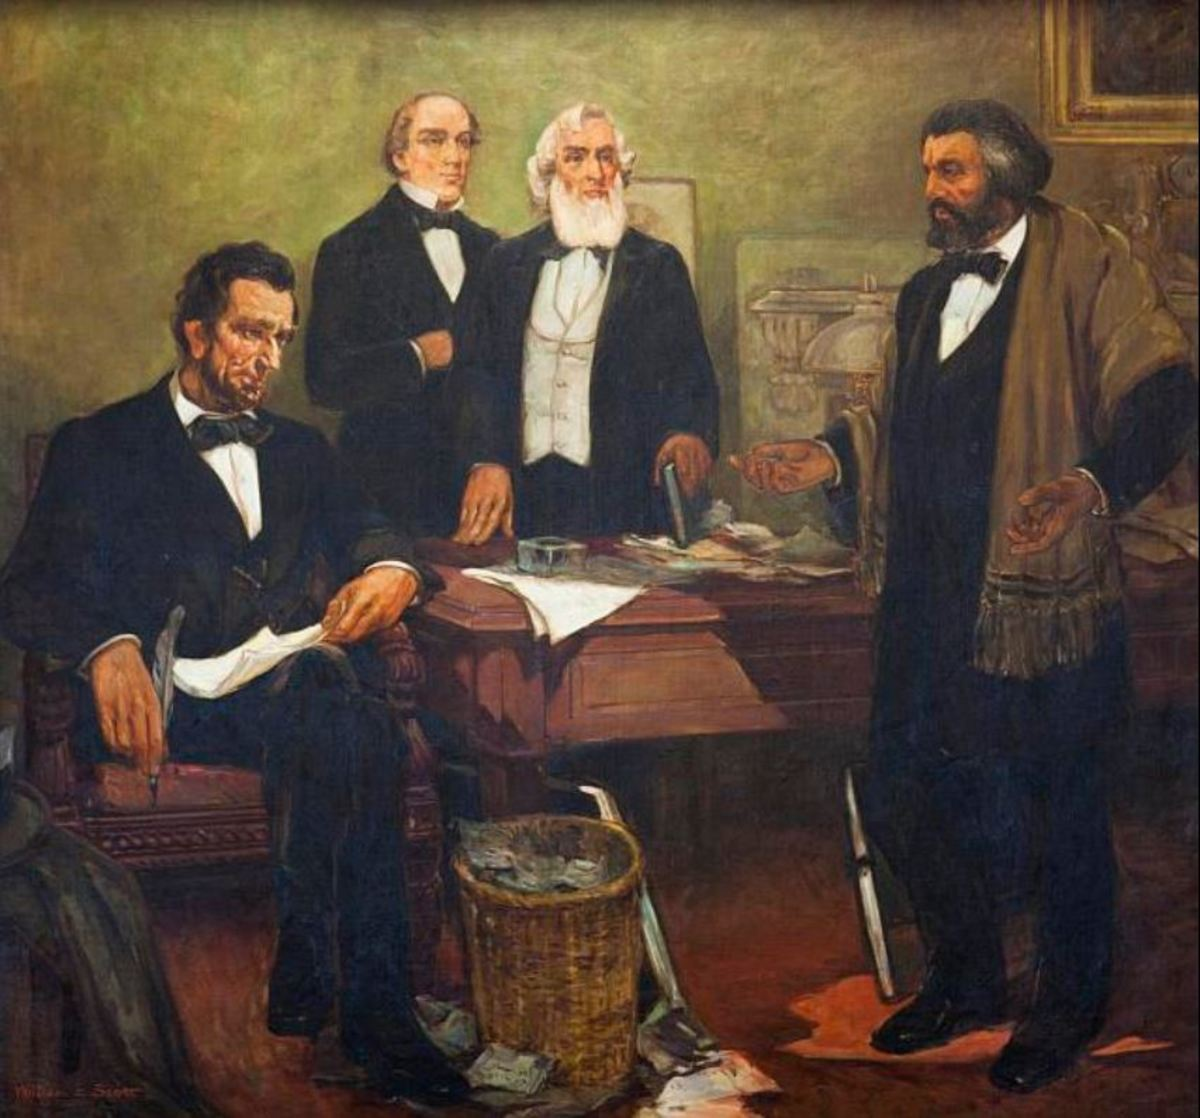 """Frederick Douglass appealing to President Lincoln and his cabinet to enlist Negroes"" mural by William Edouard Scott"